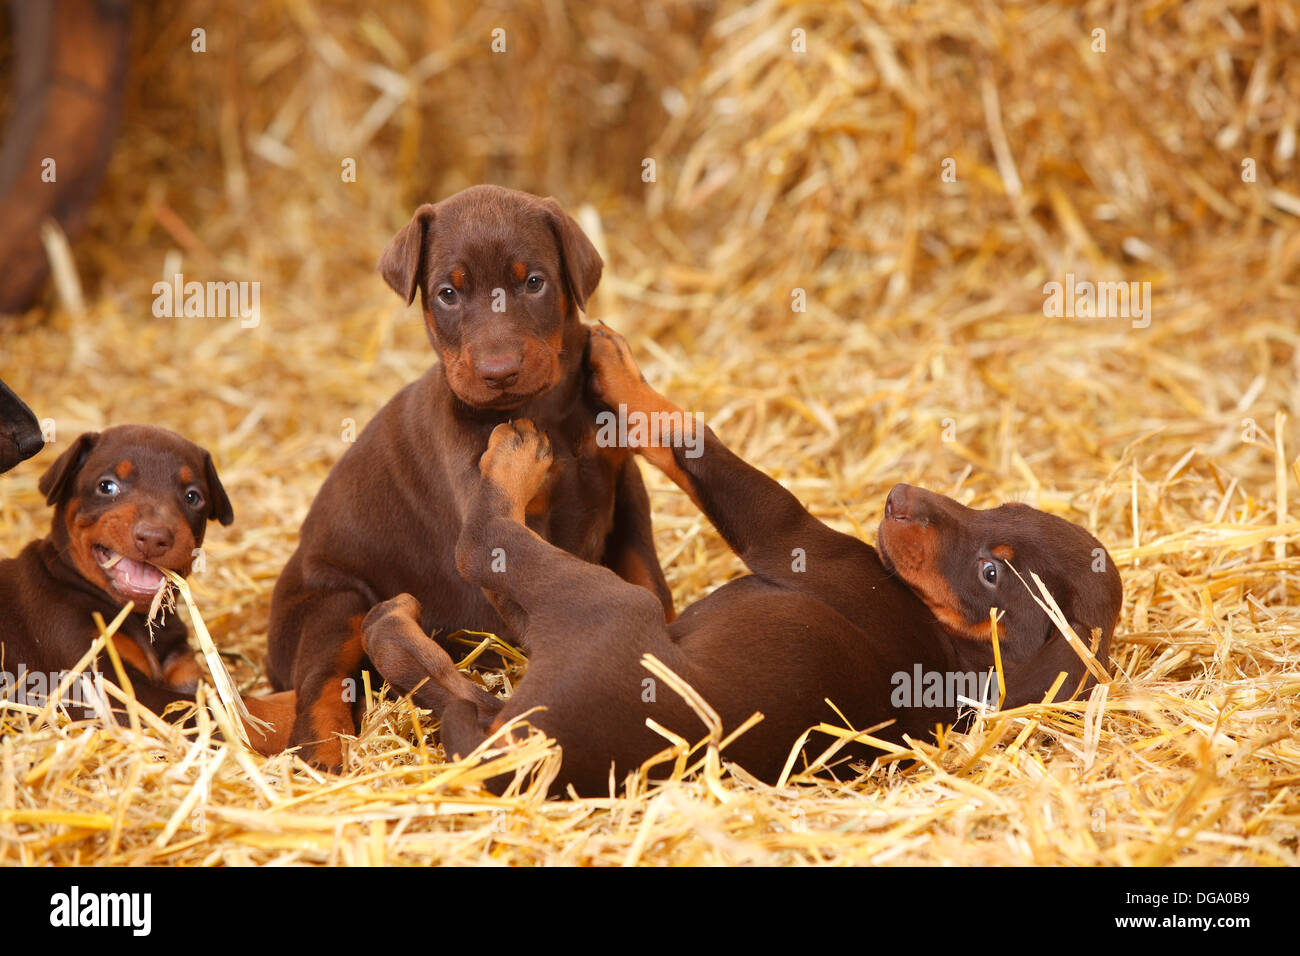 Dobermann Pinscher, puppies, 5 weeks |Dobermann, Welpen, 5 Wochen - Stock Image